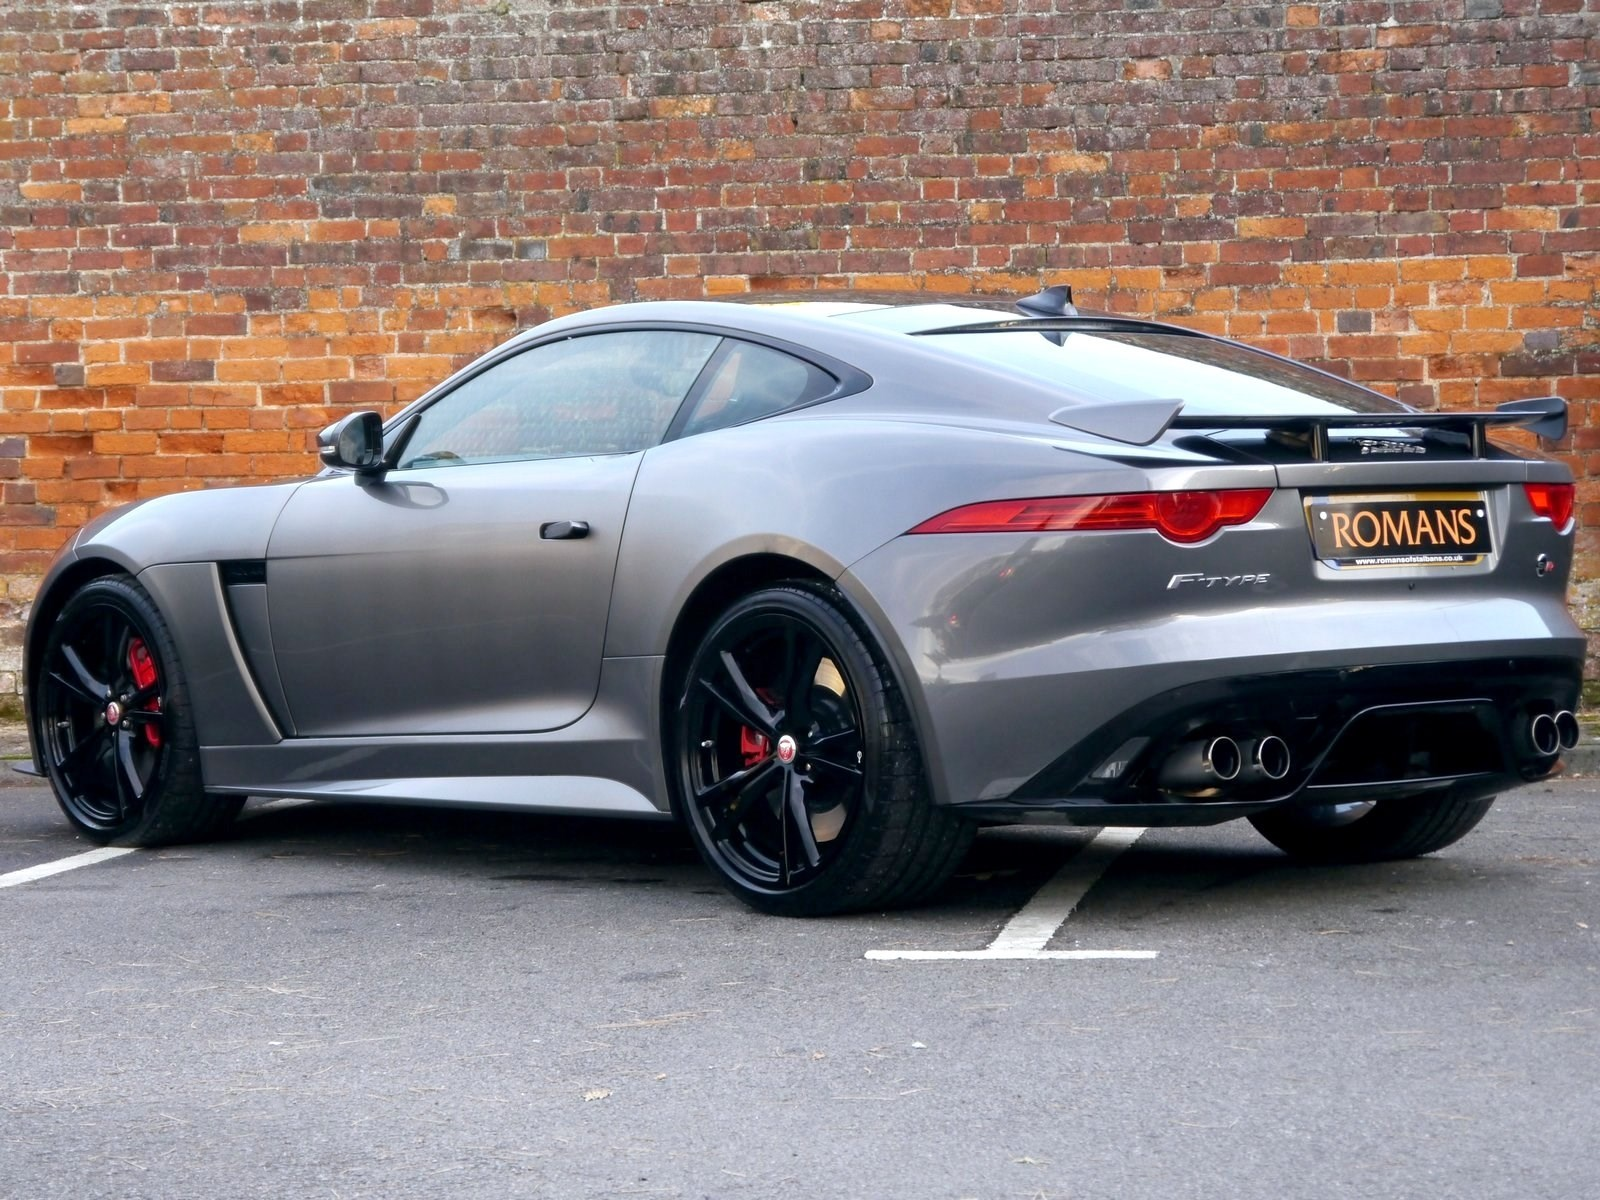 Fast Awd Cars >> Jaguar F-Type SVR 5.0 V8 Supercharged AWD - Big Specification for Sale